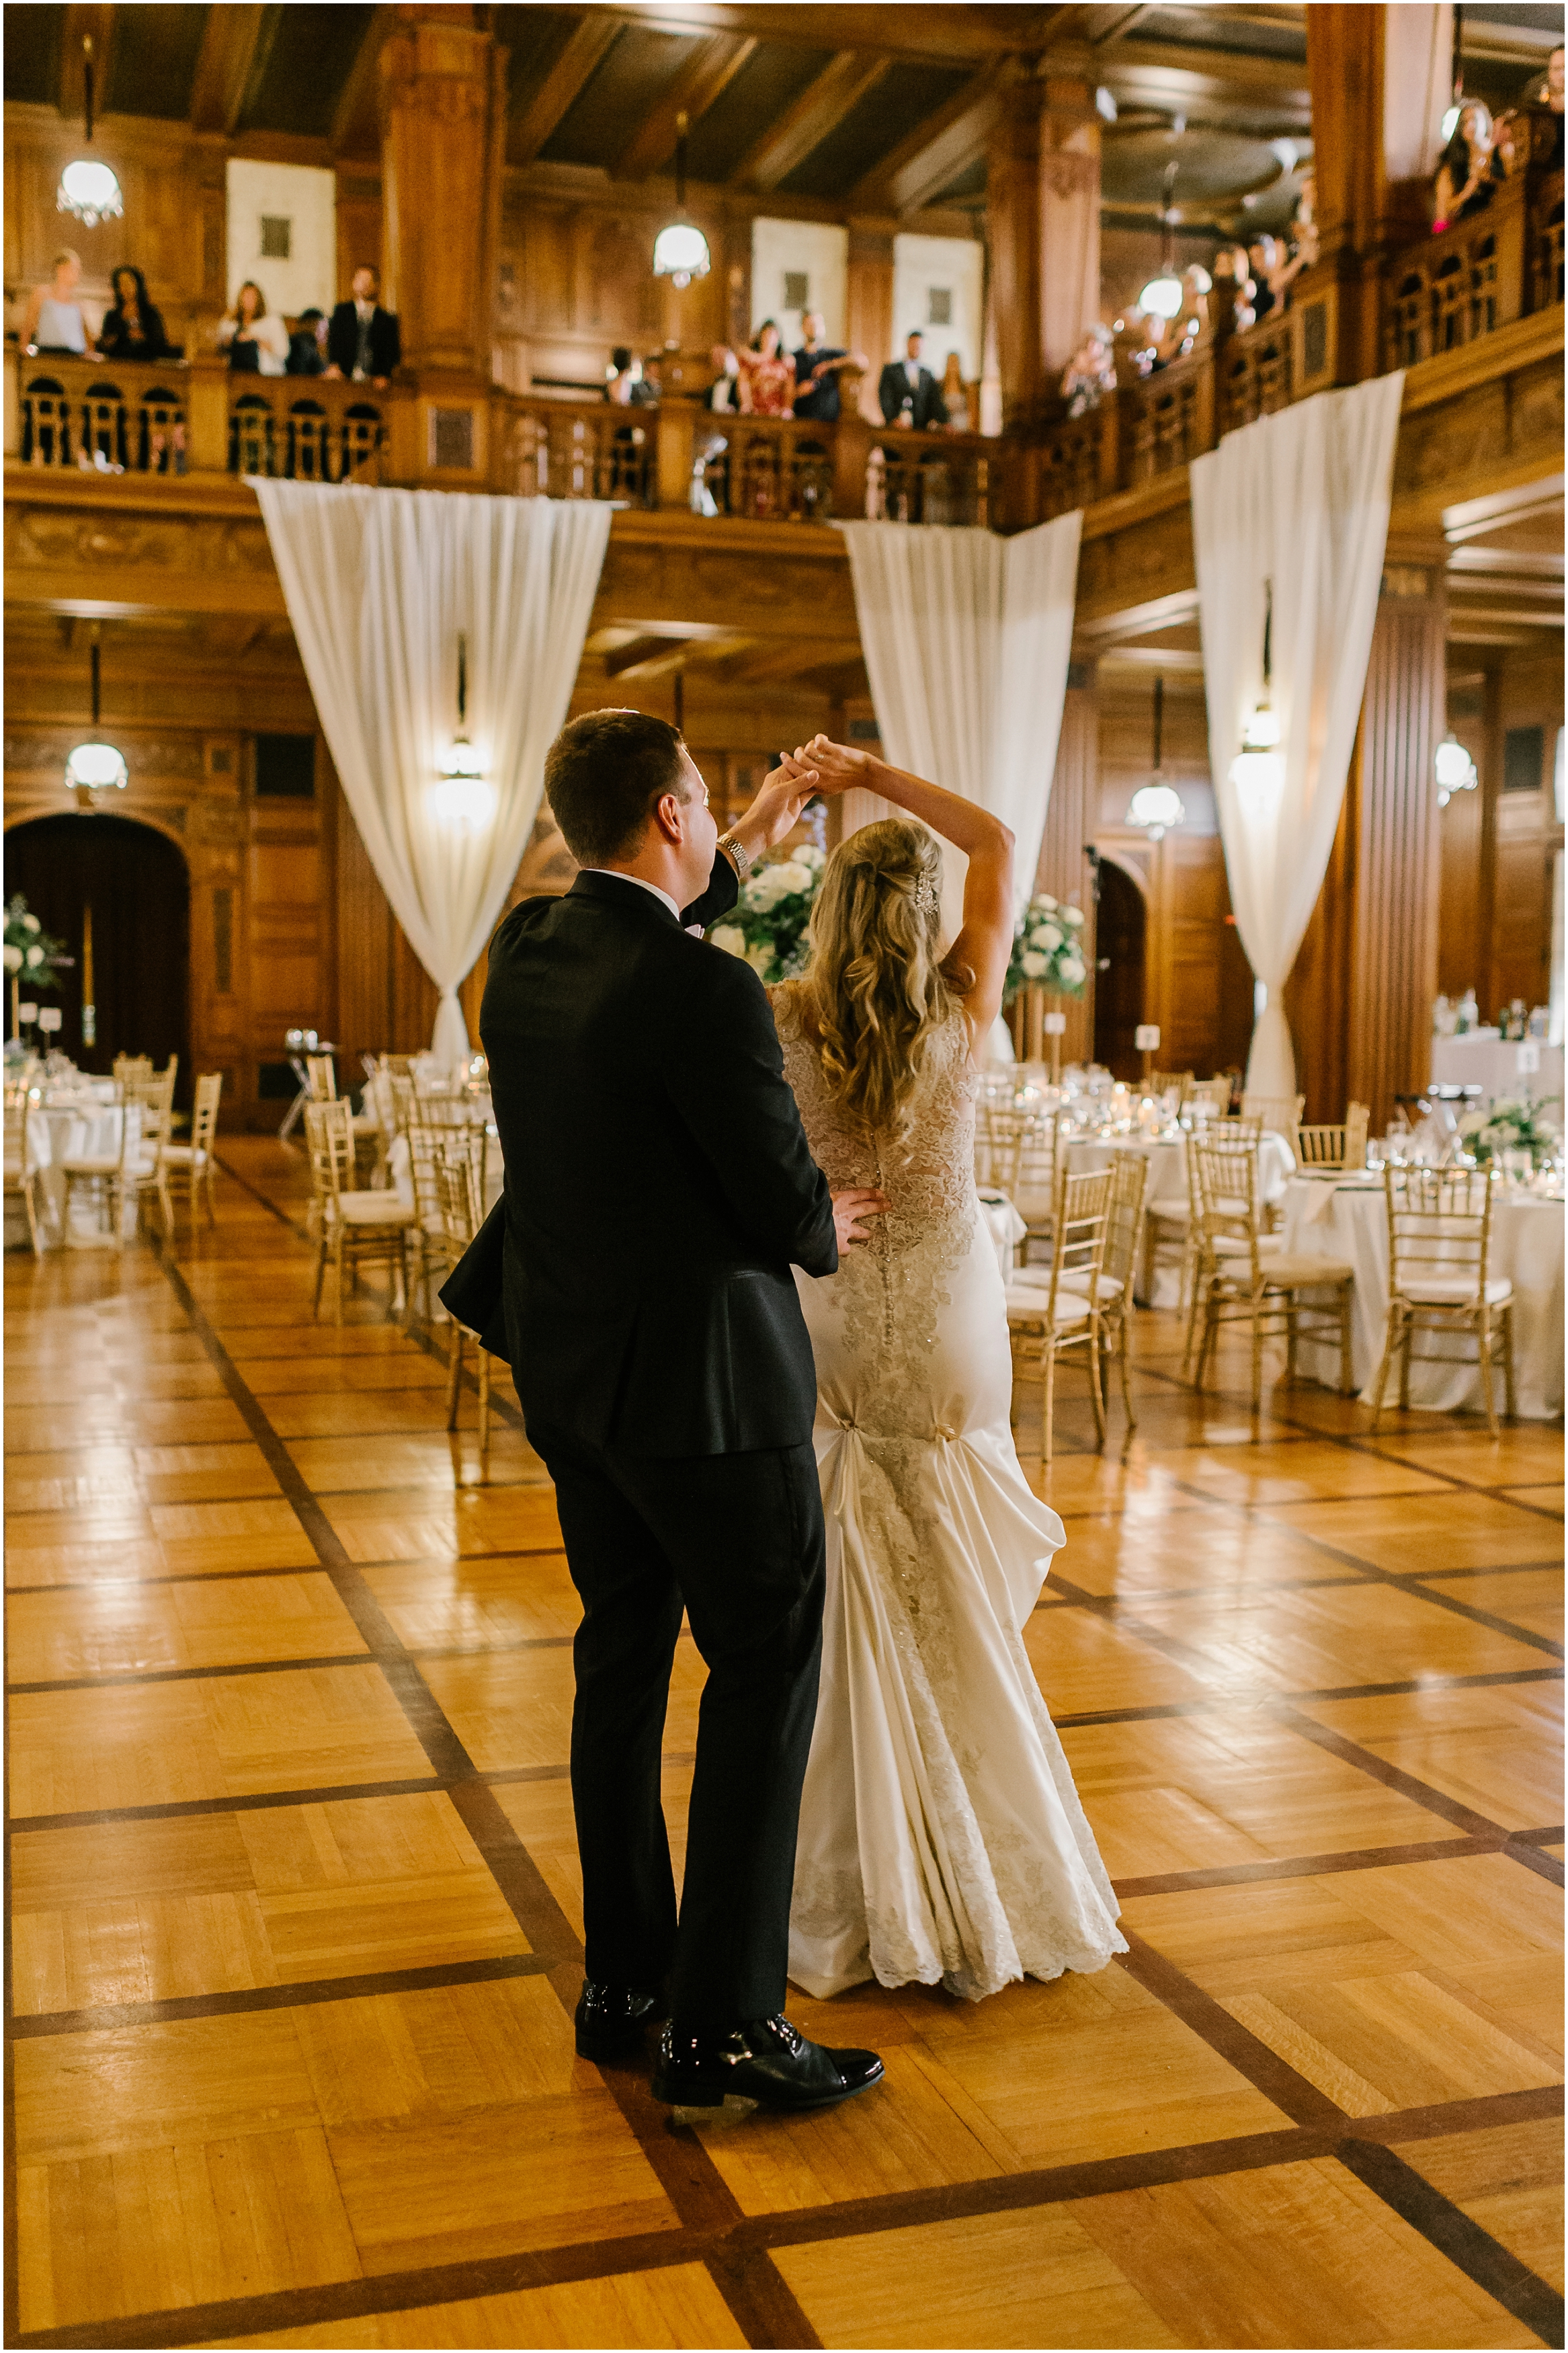 Rebecca_Shehorn_Photography_Indianapolis_Wedding_Photographer_8988.jpg